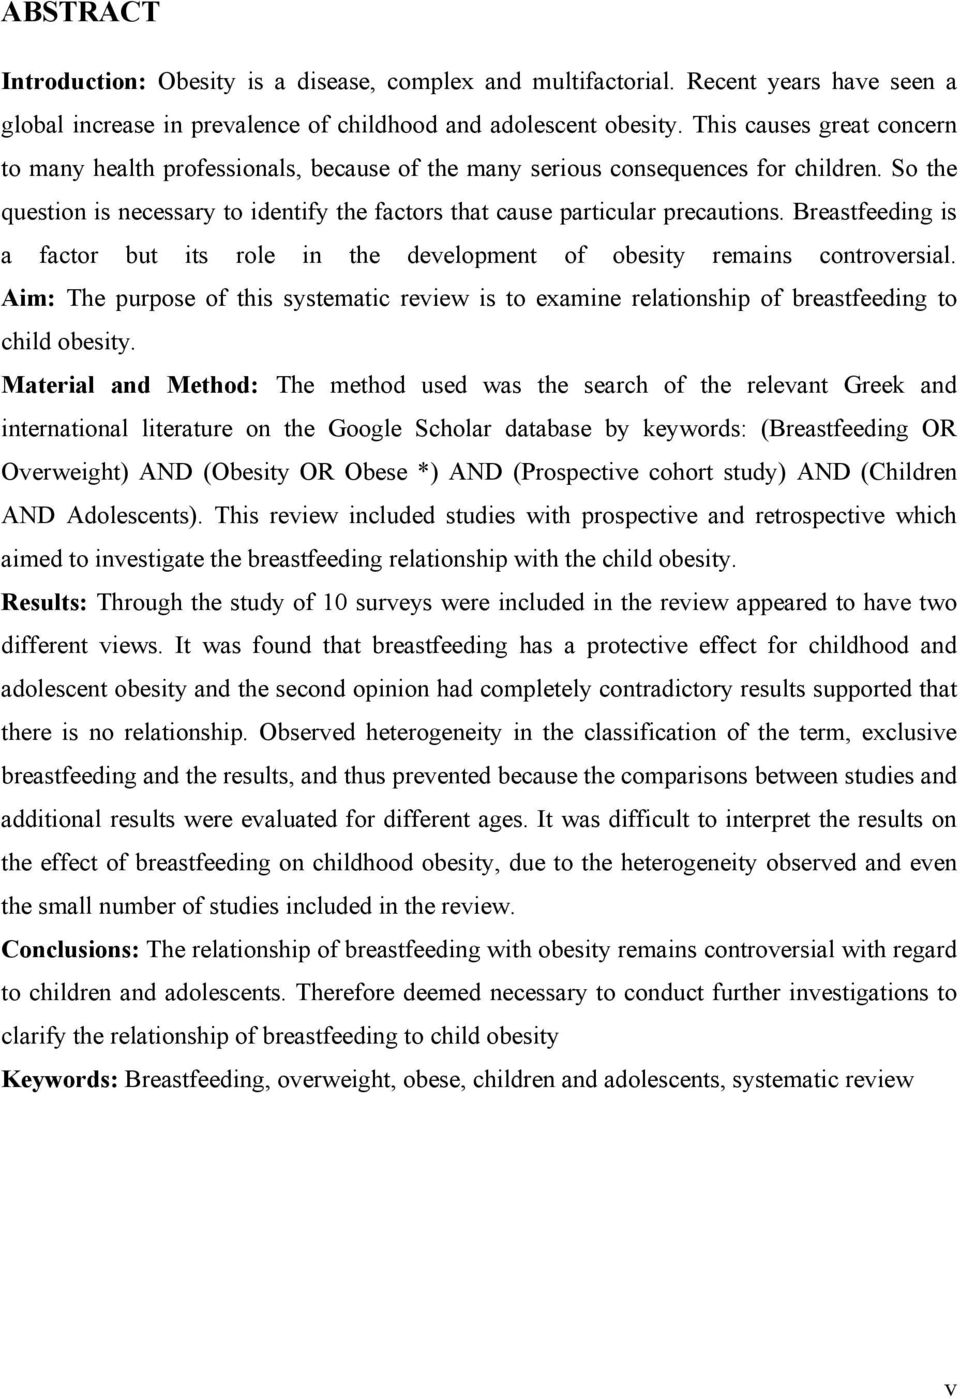 Breastfeeding is a factor but its role in the development of obesity remains controversial. Aim: The purpose of this systematic review is to examine relationship of breastfeeding to child obesity.